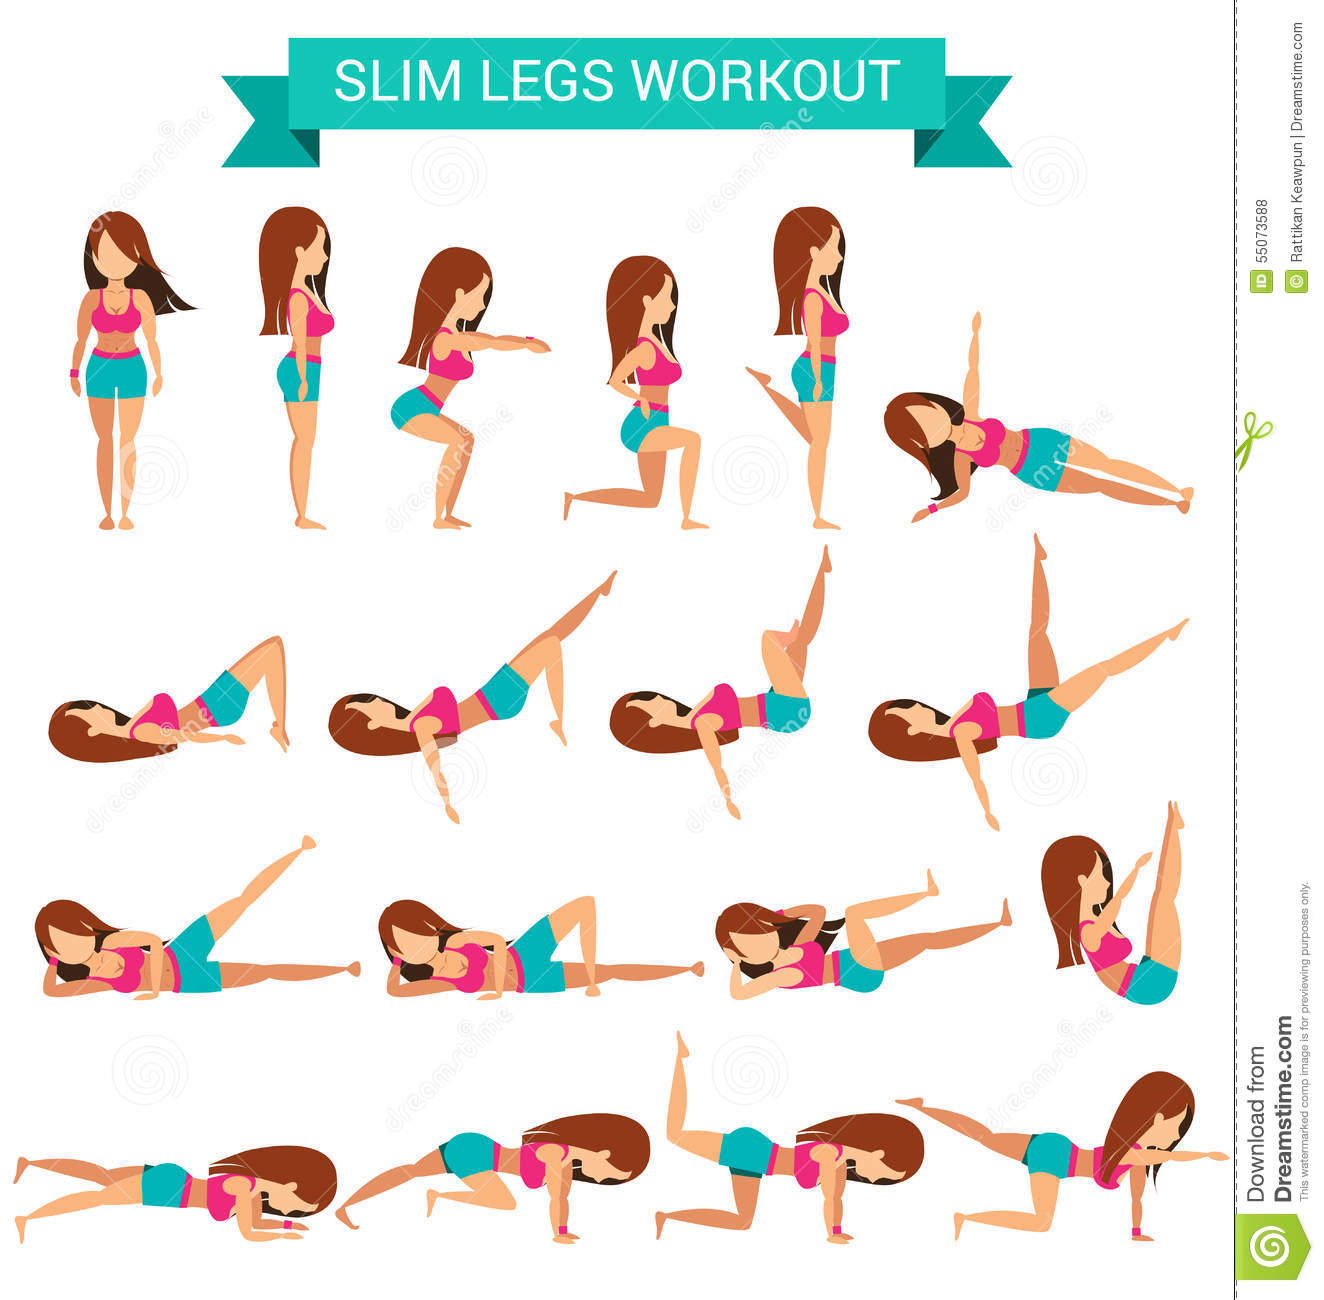 Set Of Cardio Exercise For Slim Legs Workout Stock Vector ...